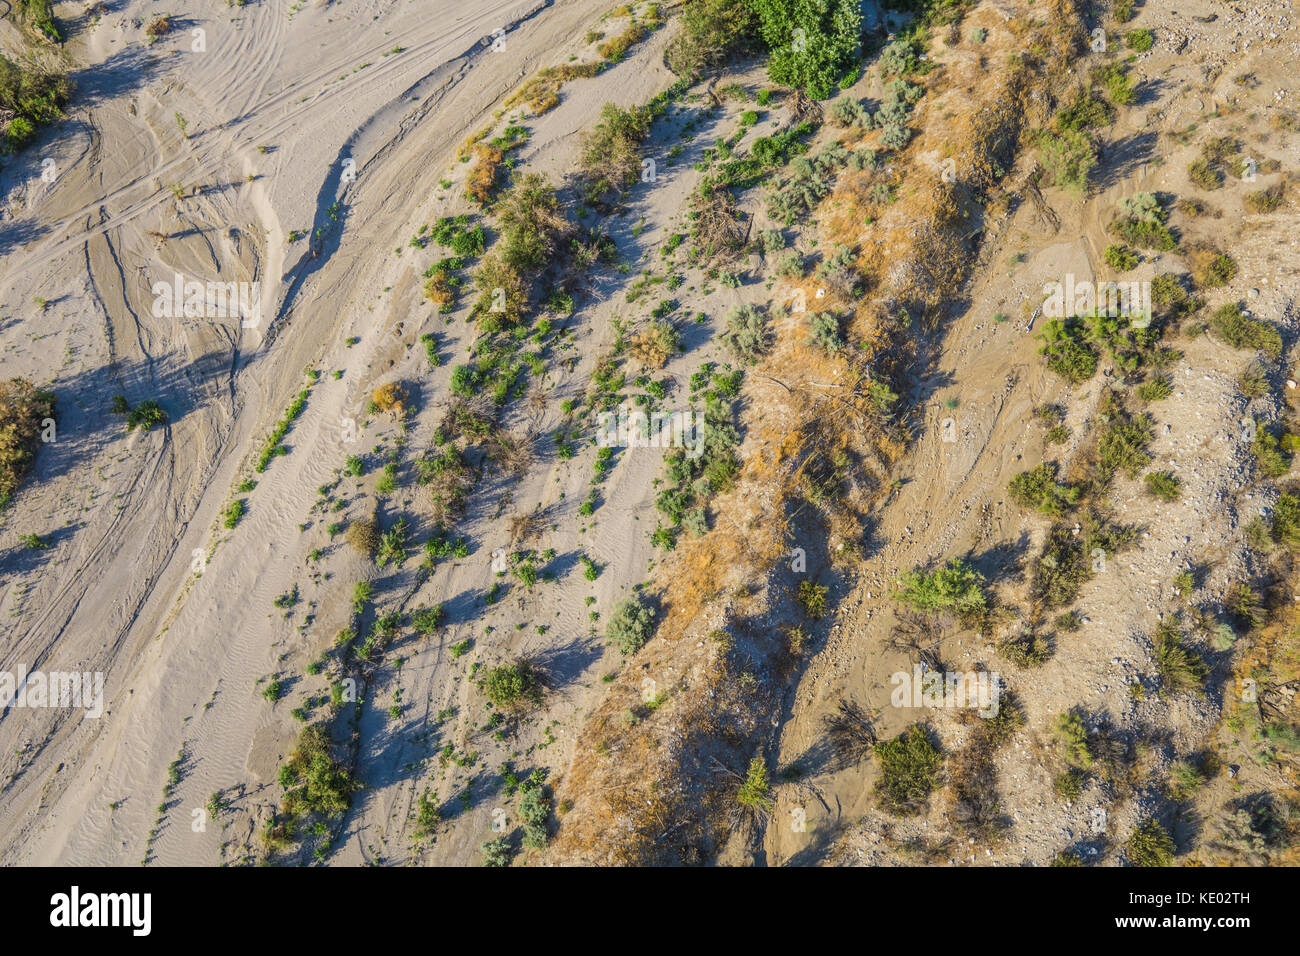 Green brush grows in the dry creek bed of an arid desert wash. - Stock Image